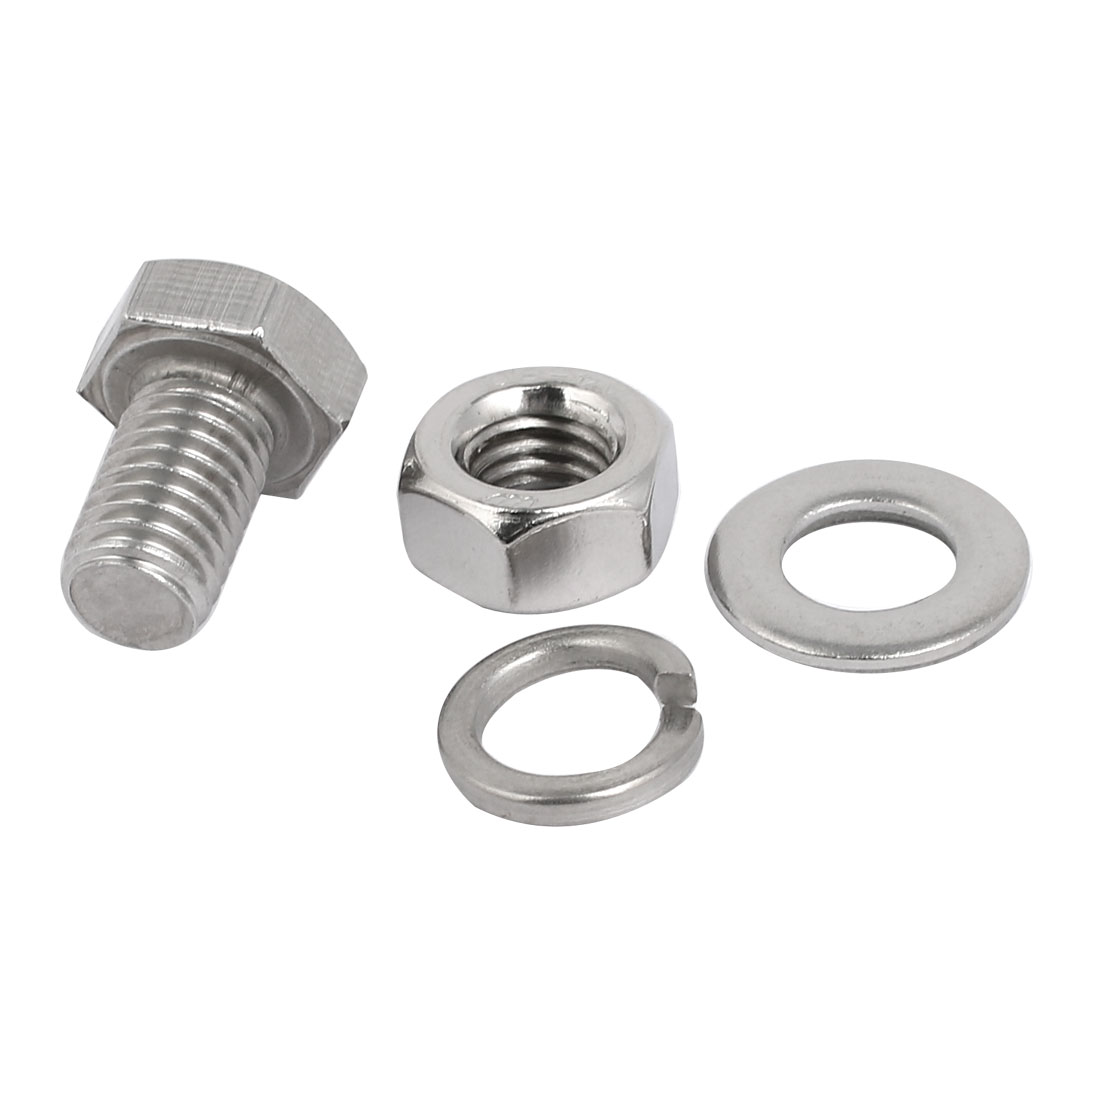 5 Set M10x20mm 304 Stainless Steel Hex Bolts w Nuts and Washers Assortment Kit - image 2 of 3